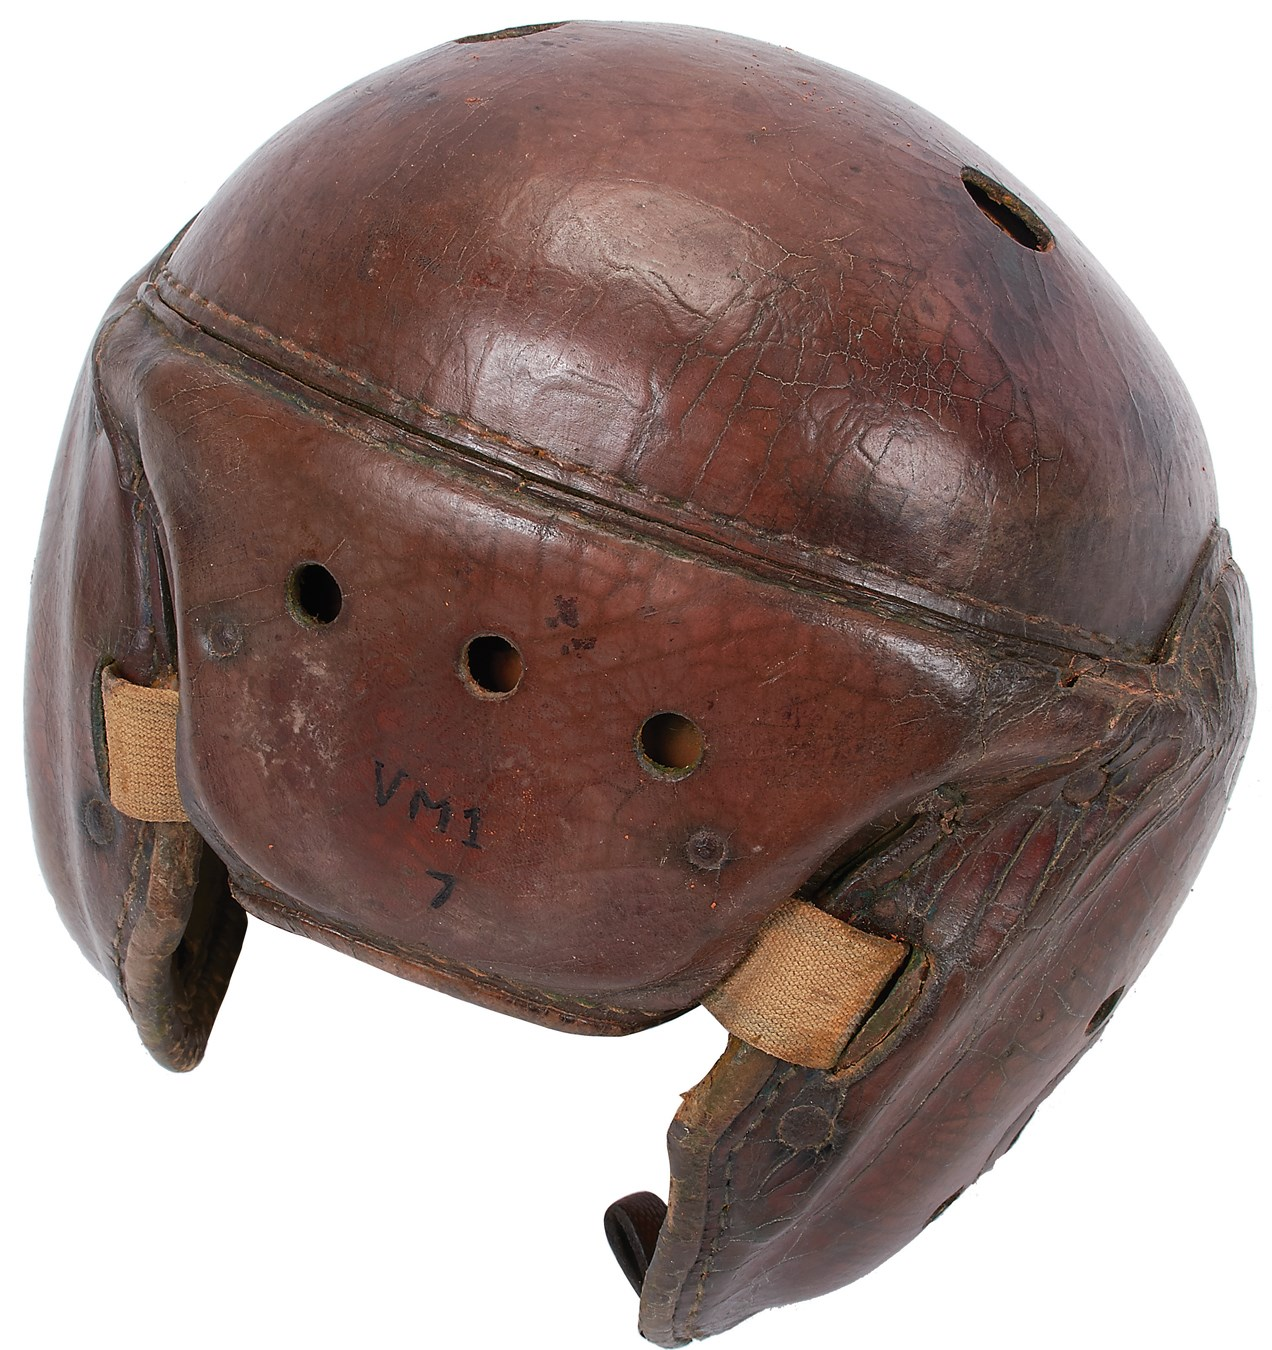 Antique Sporting Goods - Steel17